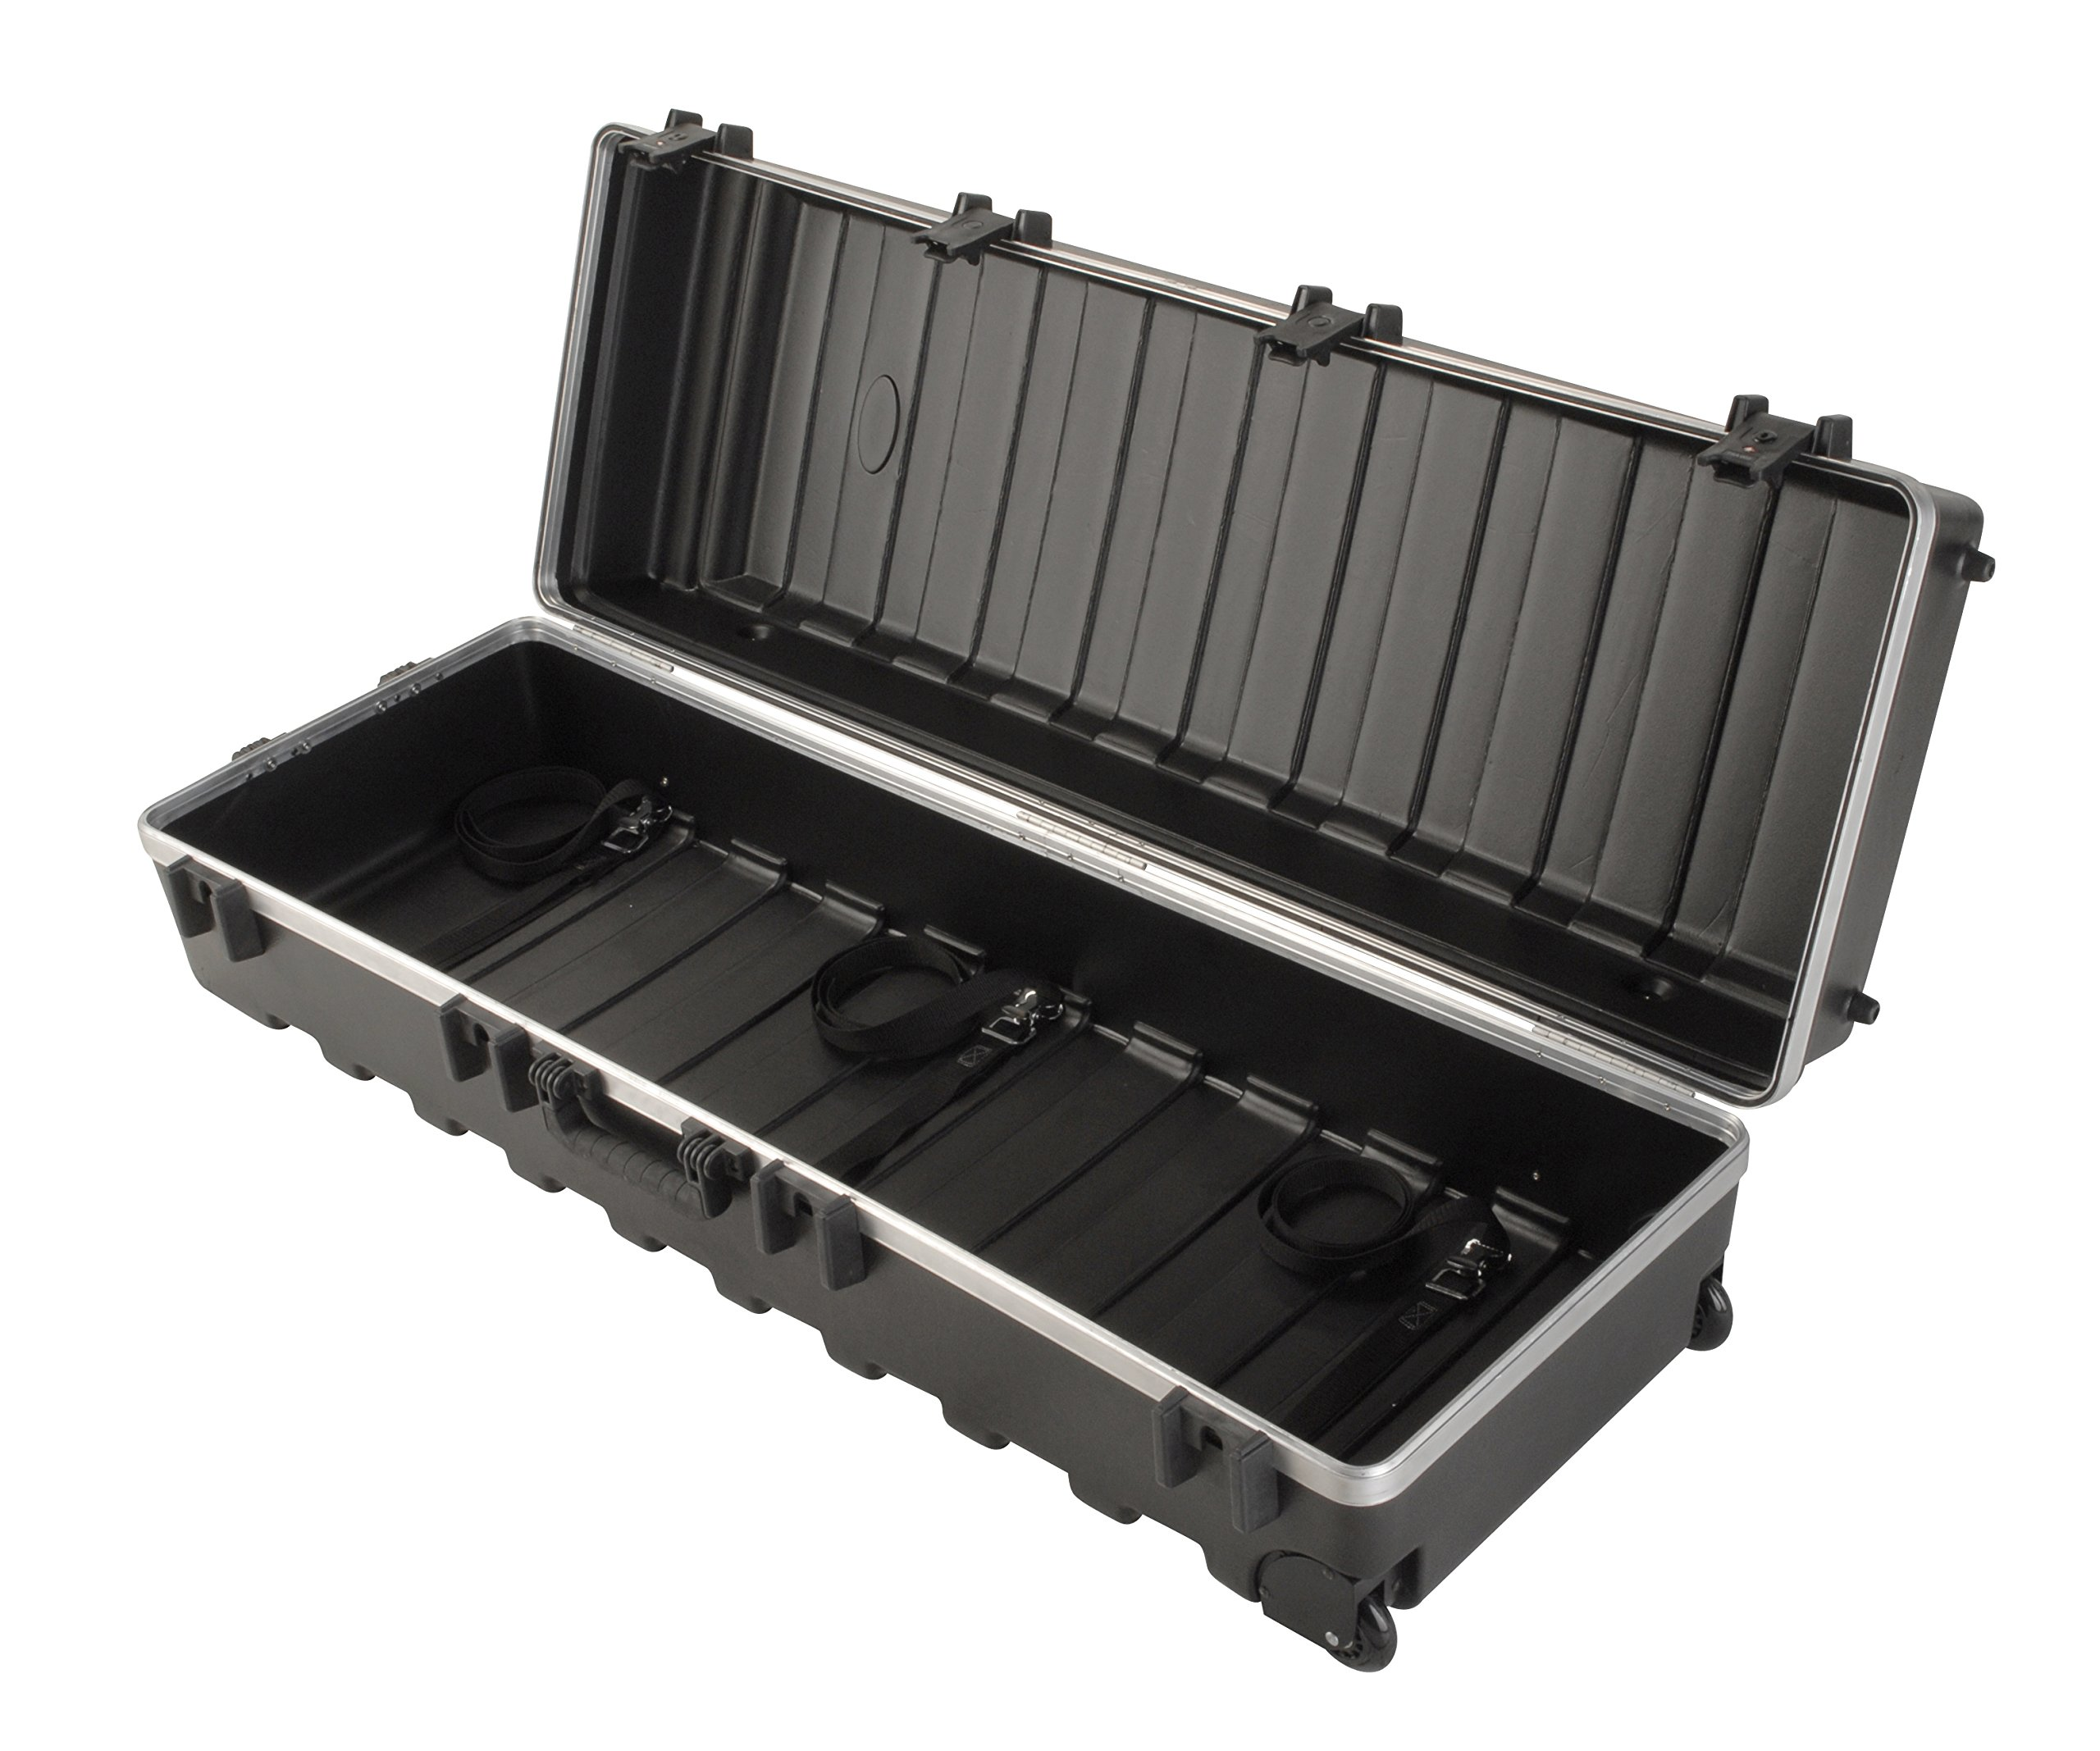 SKB ATA Large Stand Case (48 x 16-1/4 x 13) with Wheels & Straps, TSA Latches, Over-molded Handle